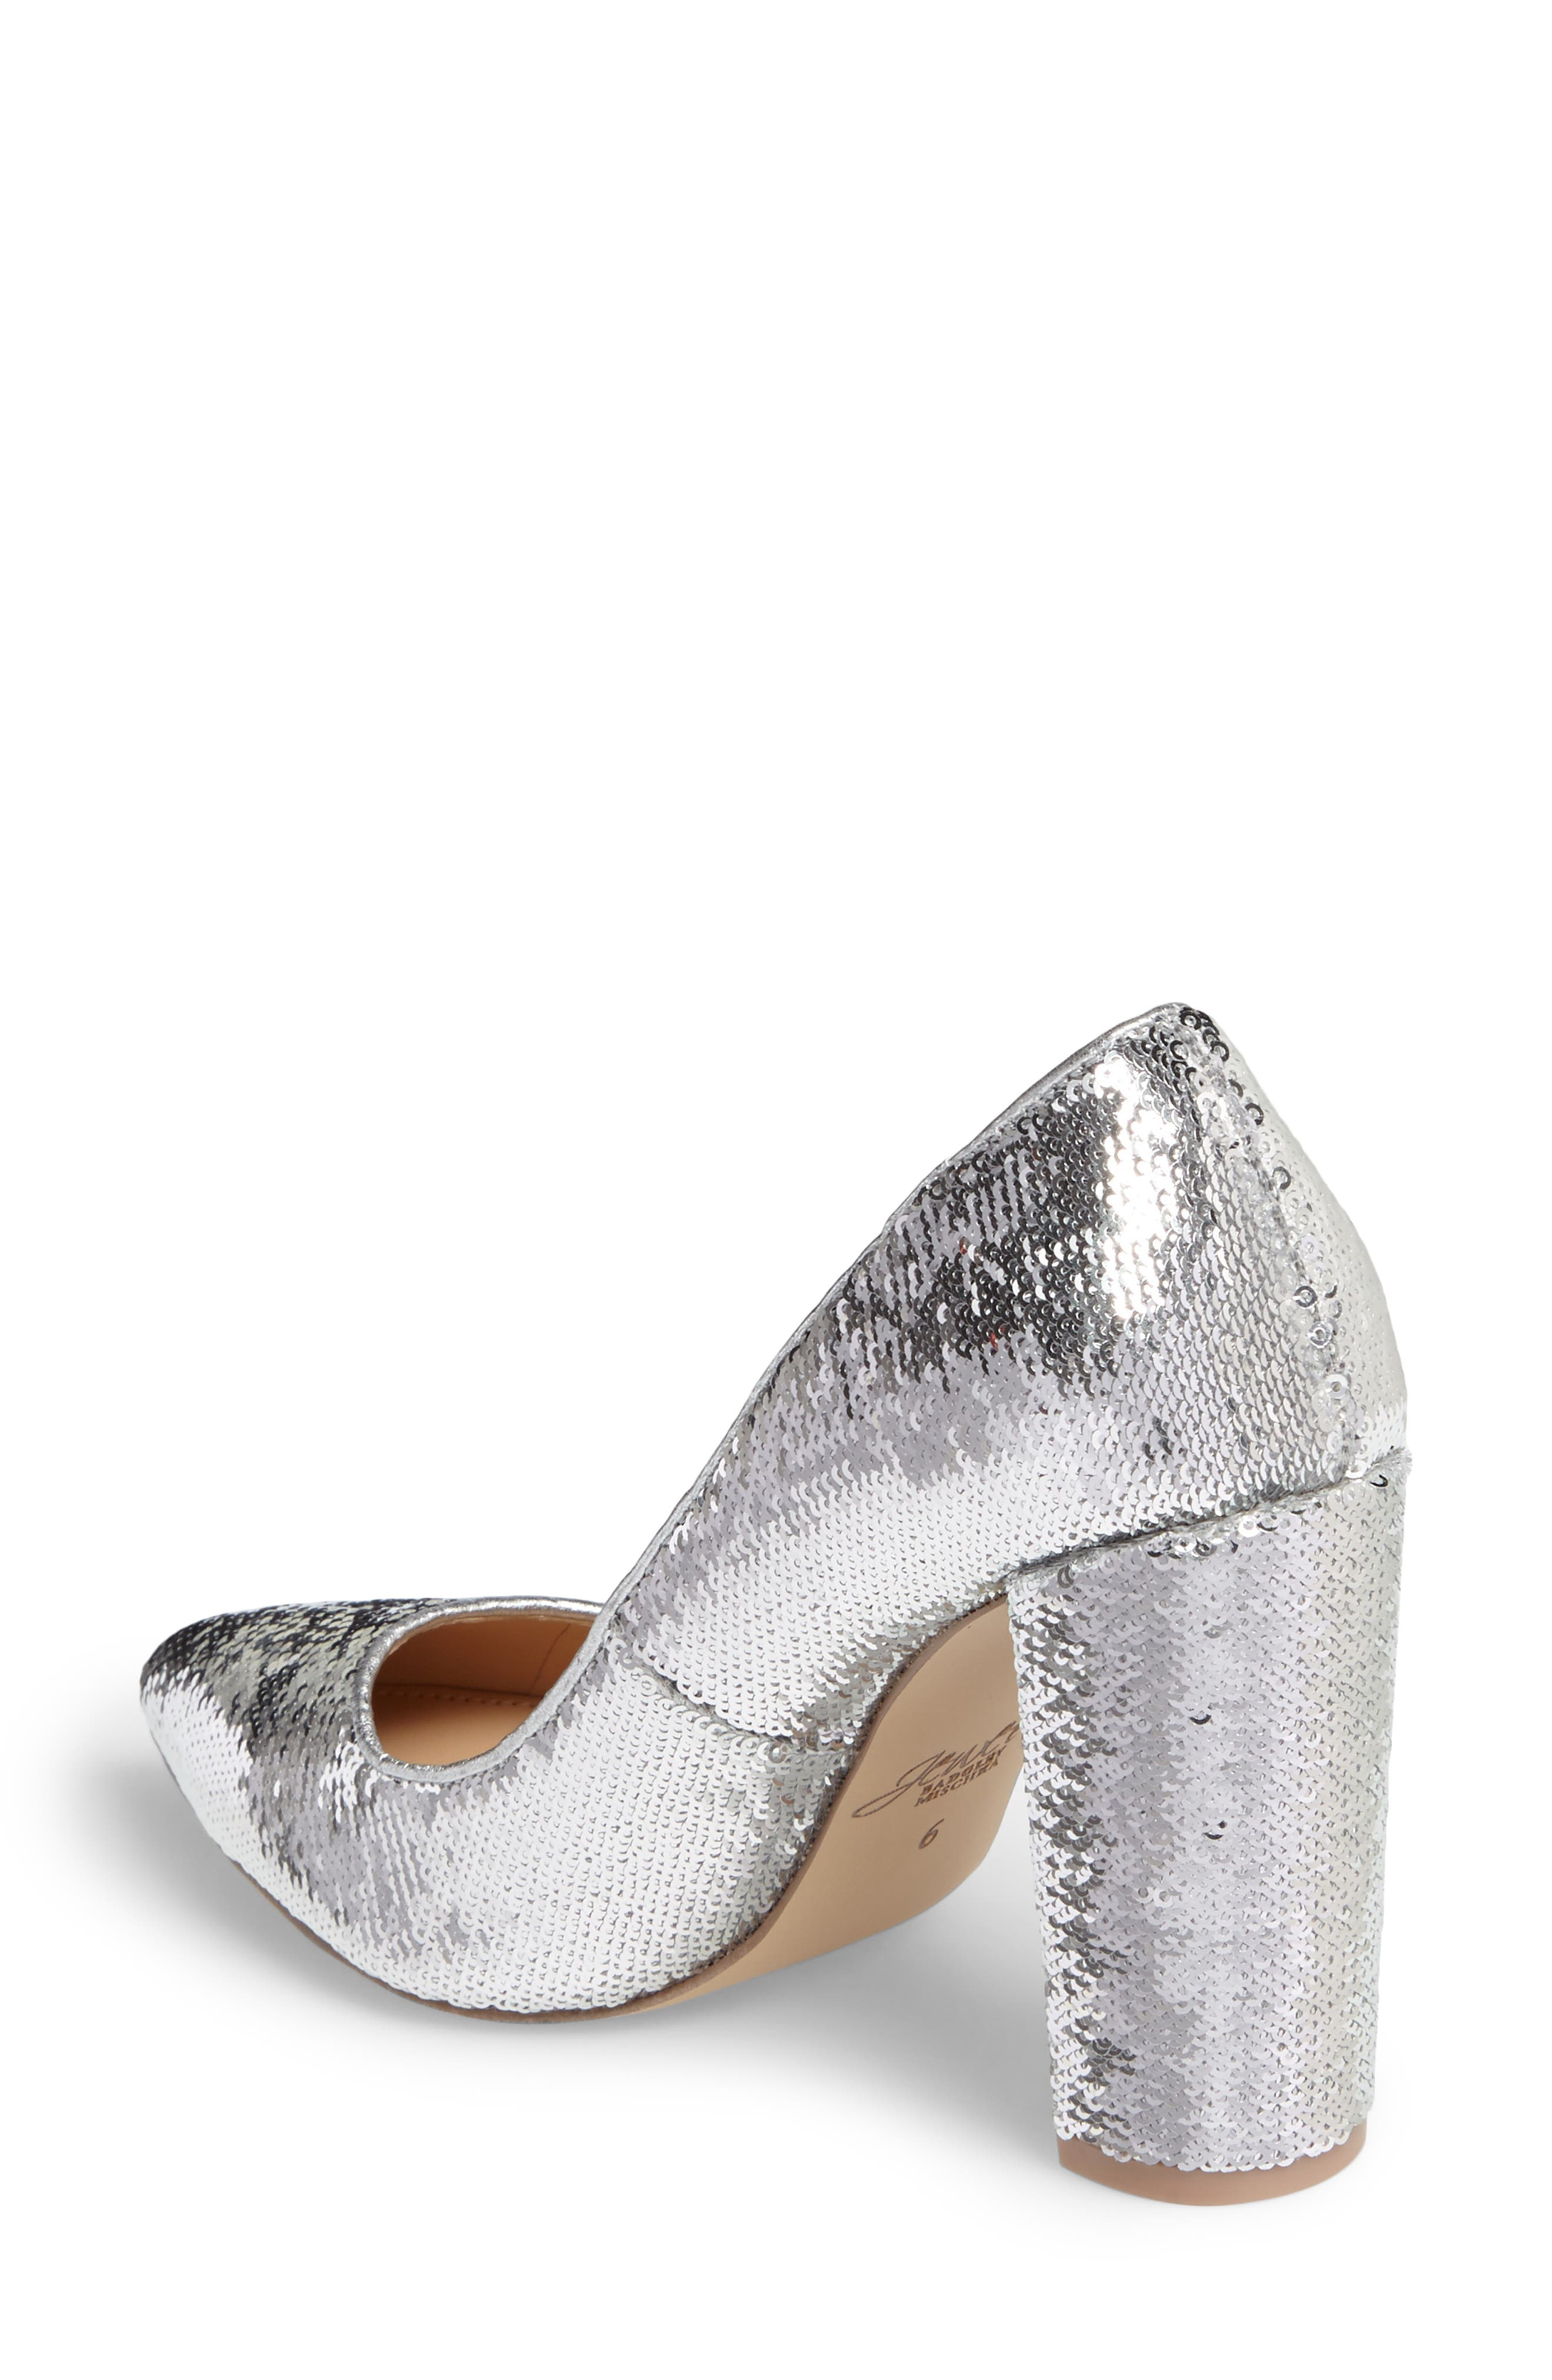 Luxury Pointy Toe Pump,                             Alternate thumbnail 2, color,                             Silver Leather